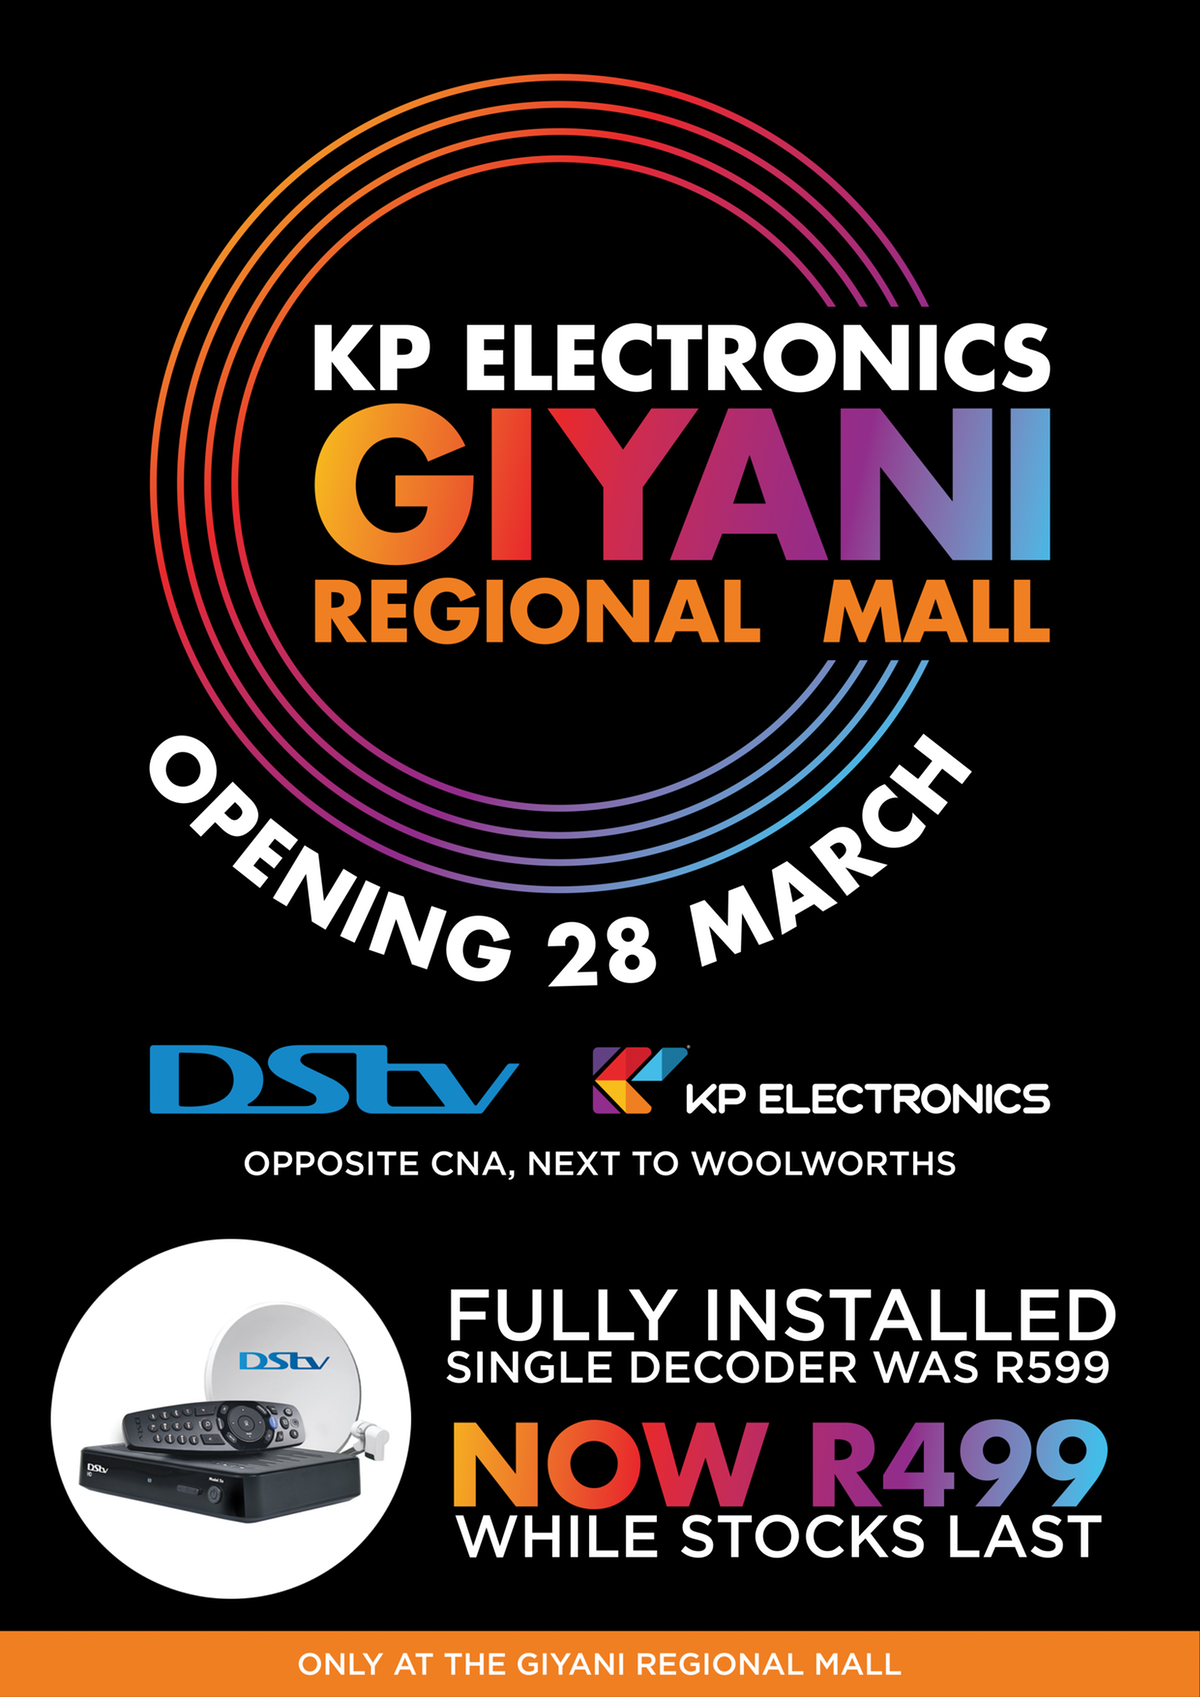 KP Electronics - New Store opening